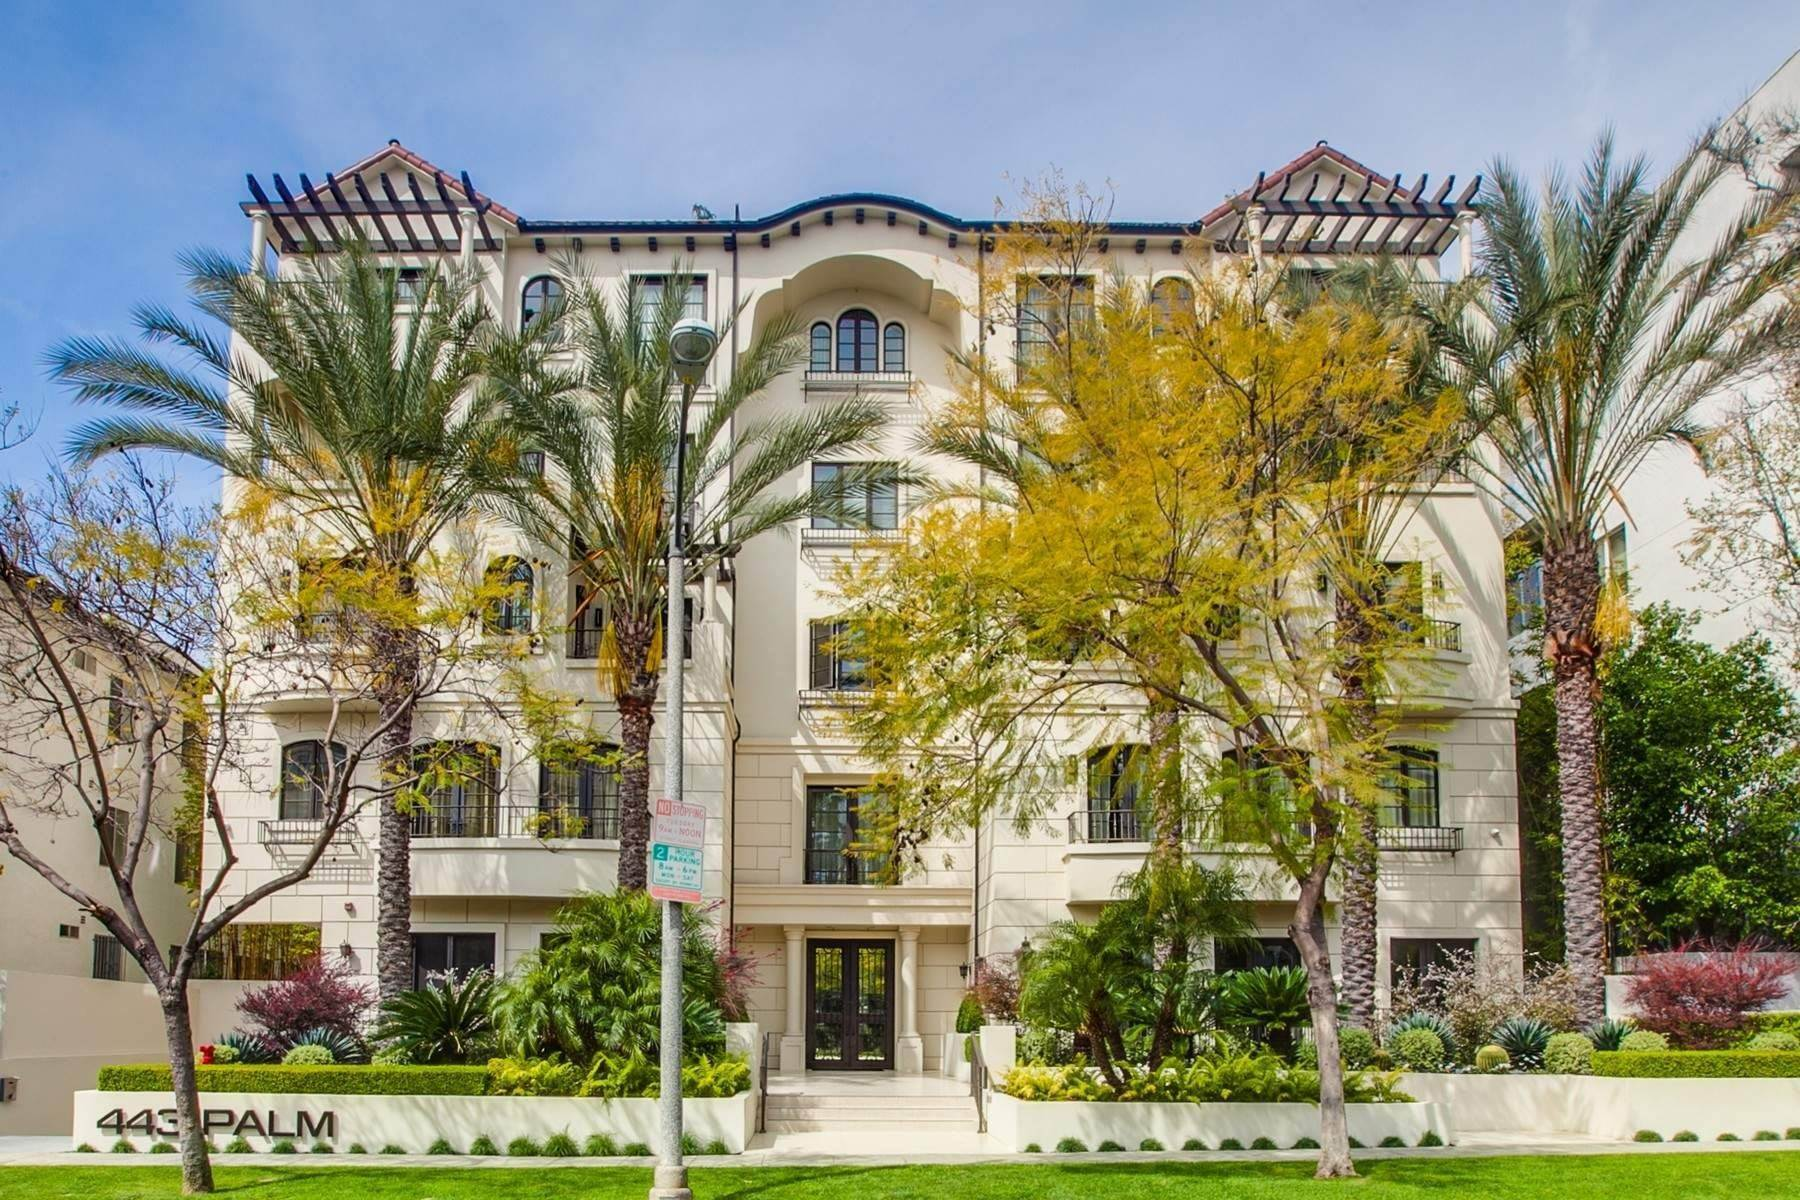 Condominiums por un Venta en 443 Palm Drive, Unit 402 Beverly Hills, California 90210 Estados Unidos